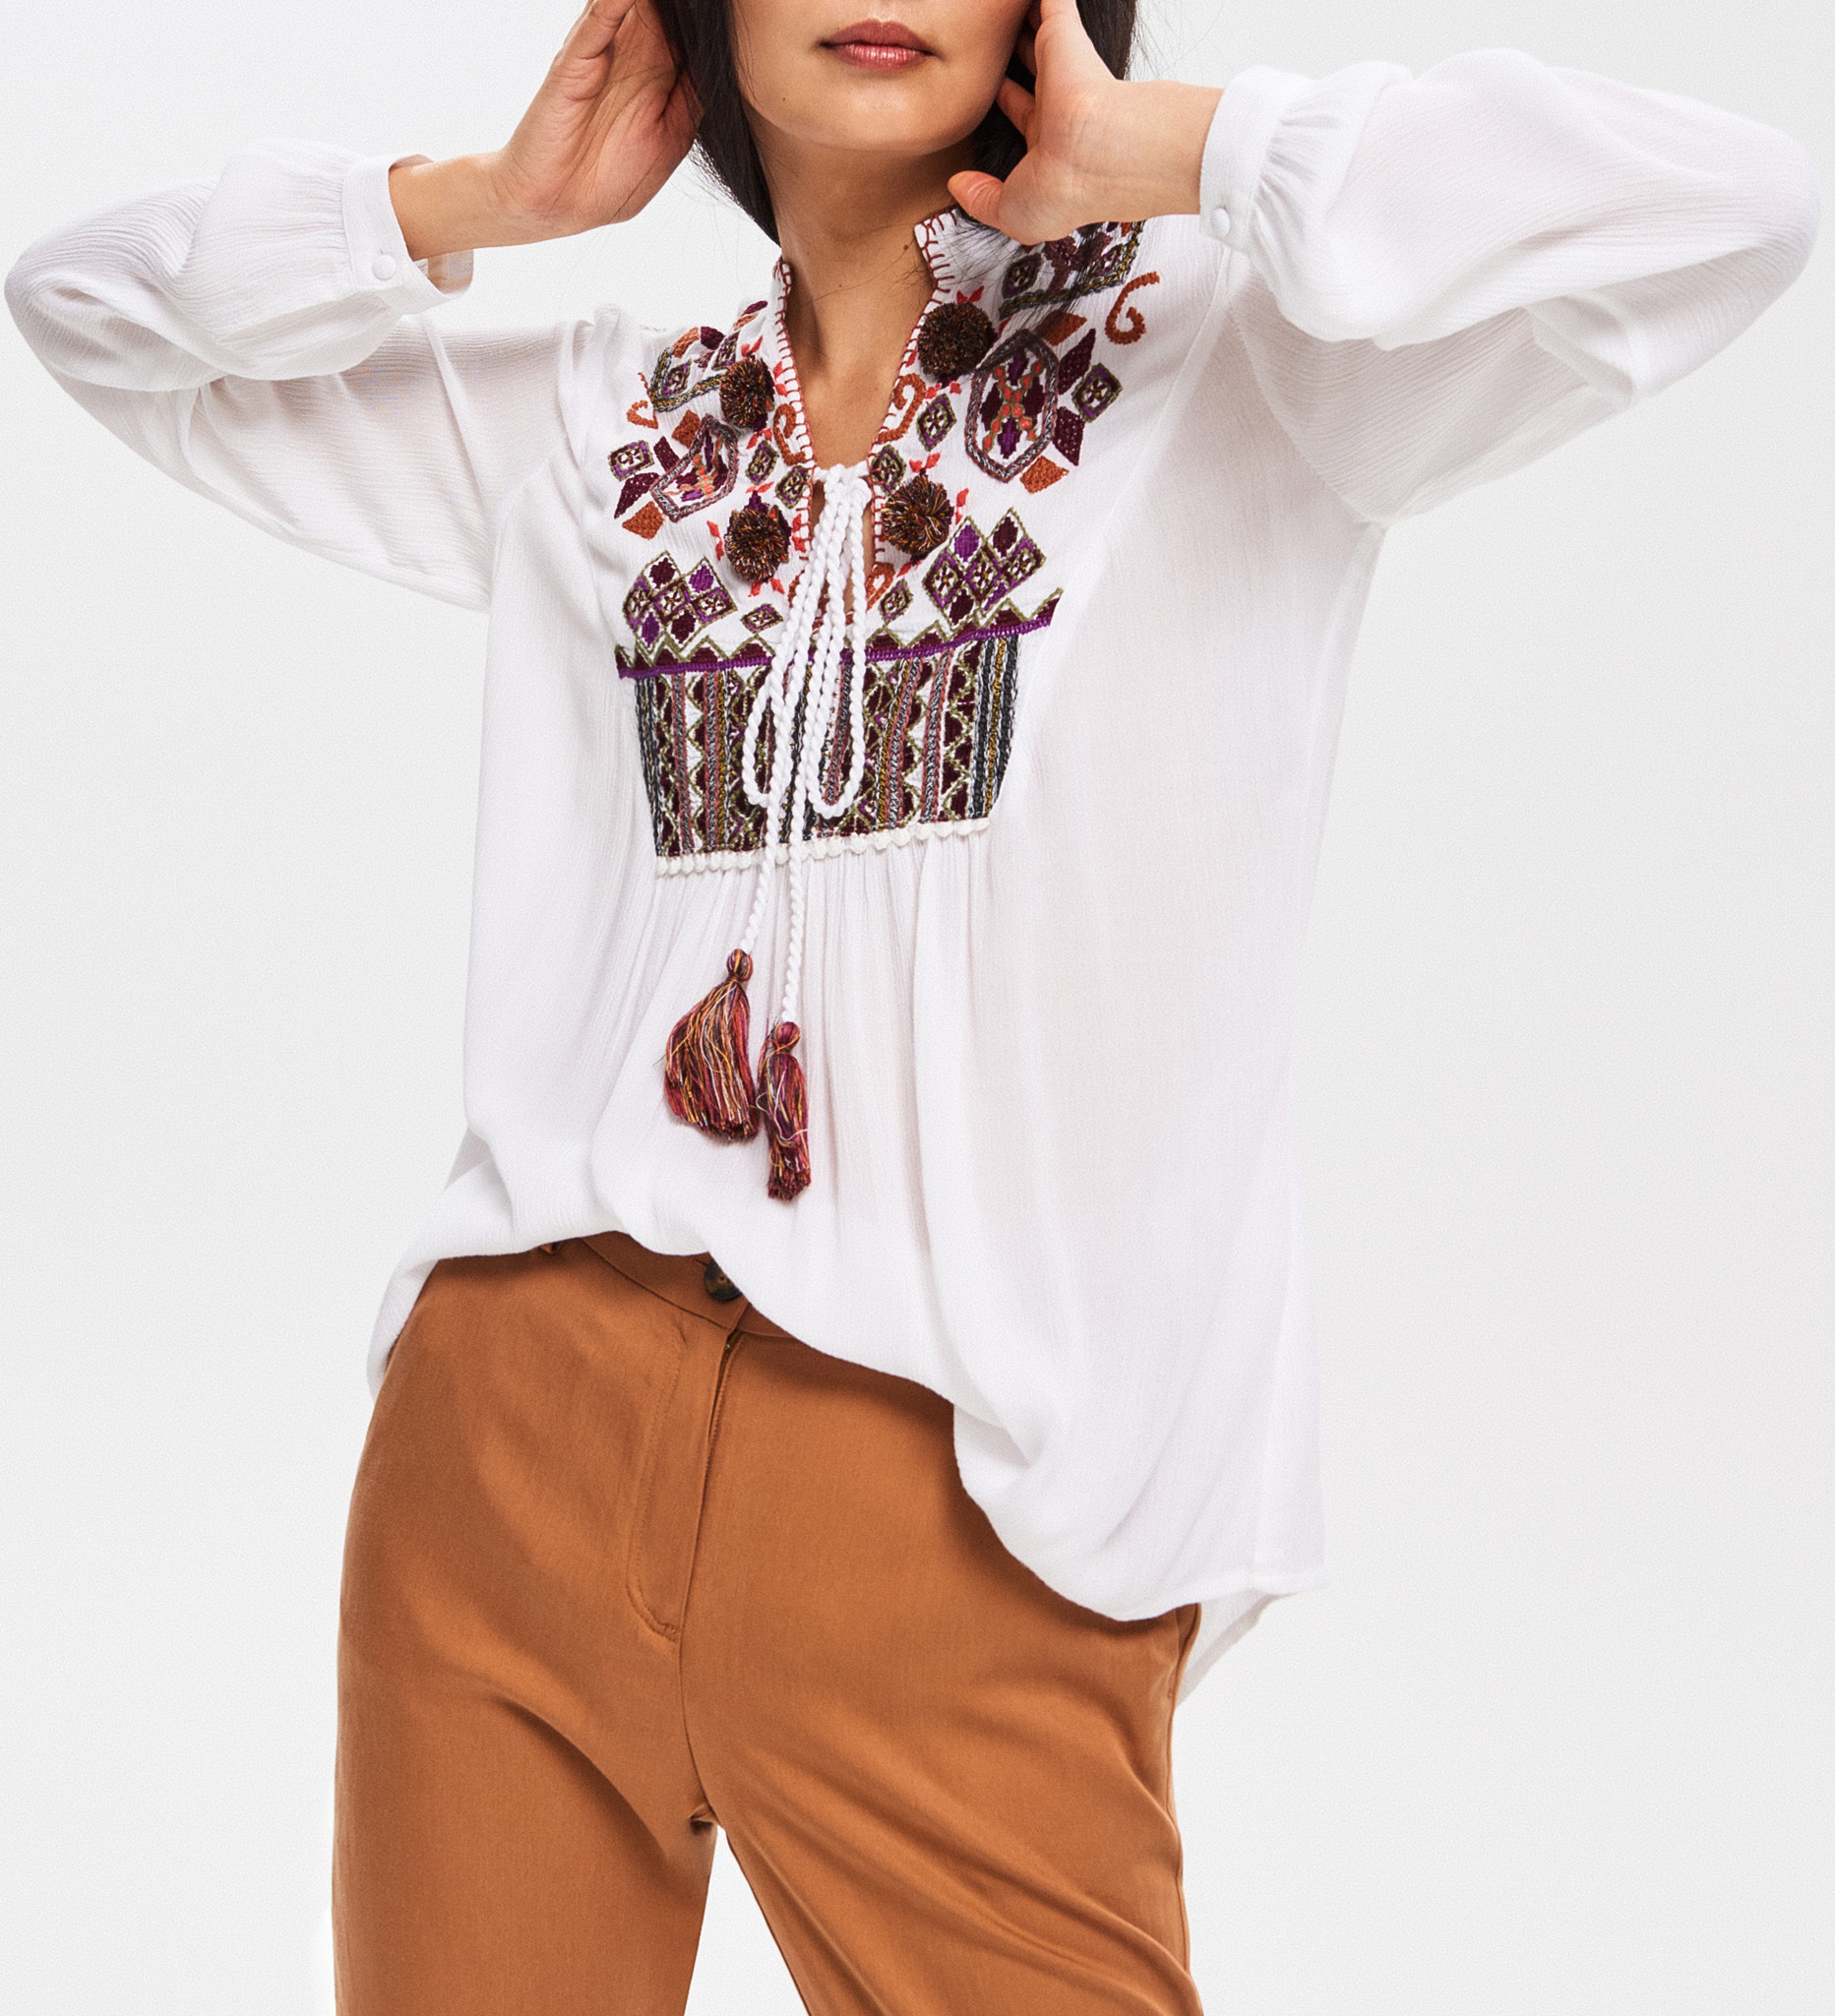 Mexican Beach Holiday Viscose Embroidery Women Blouse & Top